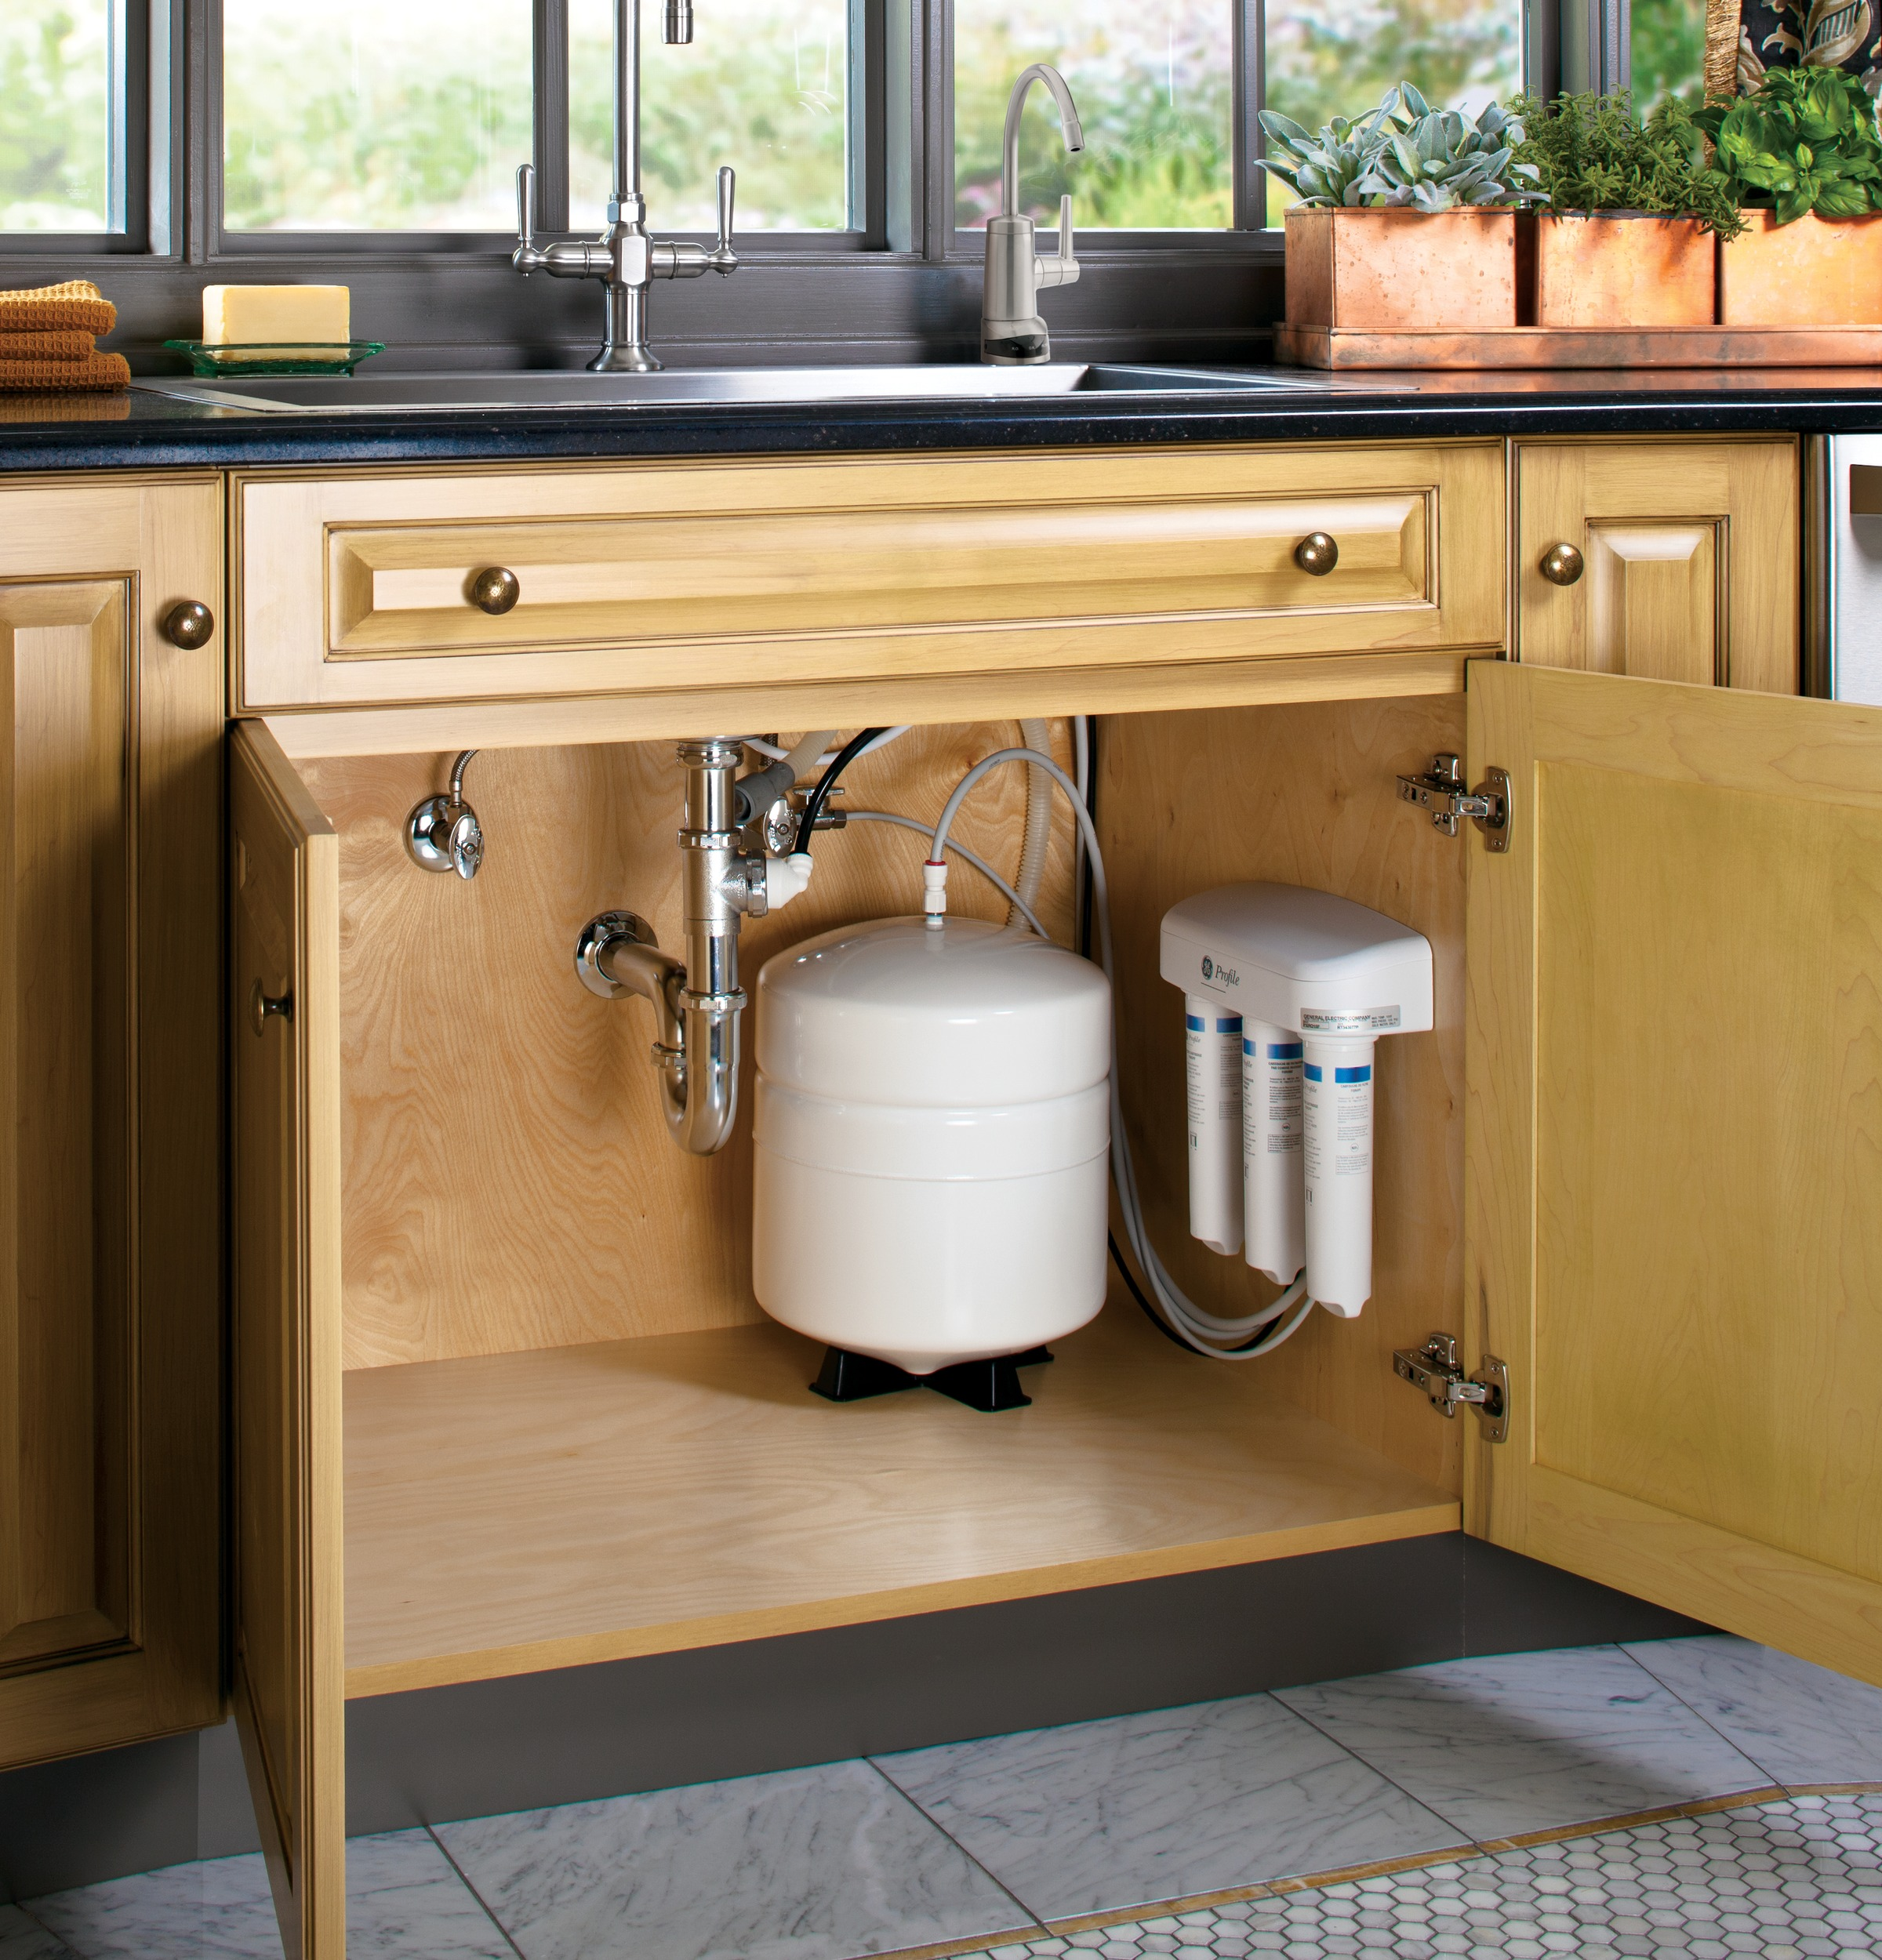 Ge Profile Reverse Osmosis Filtration System With Brushed